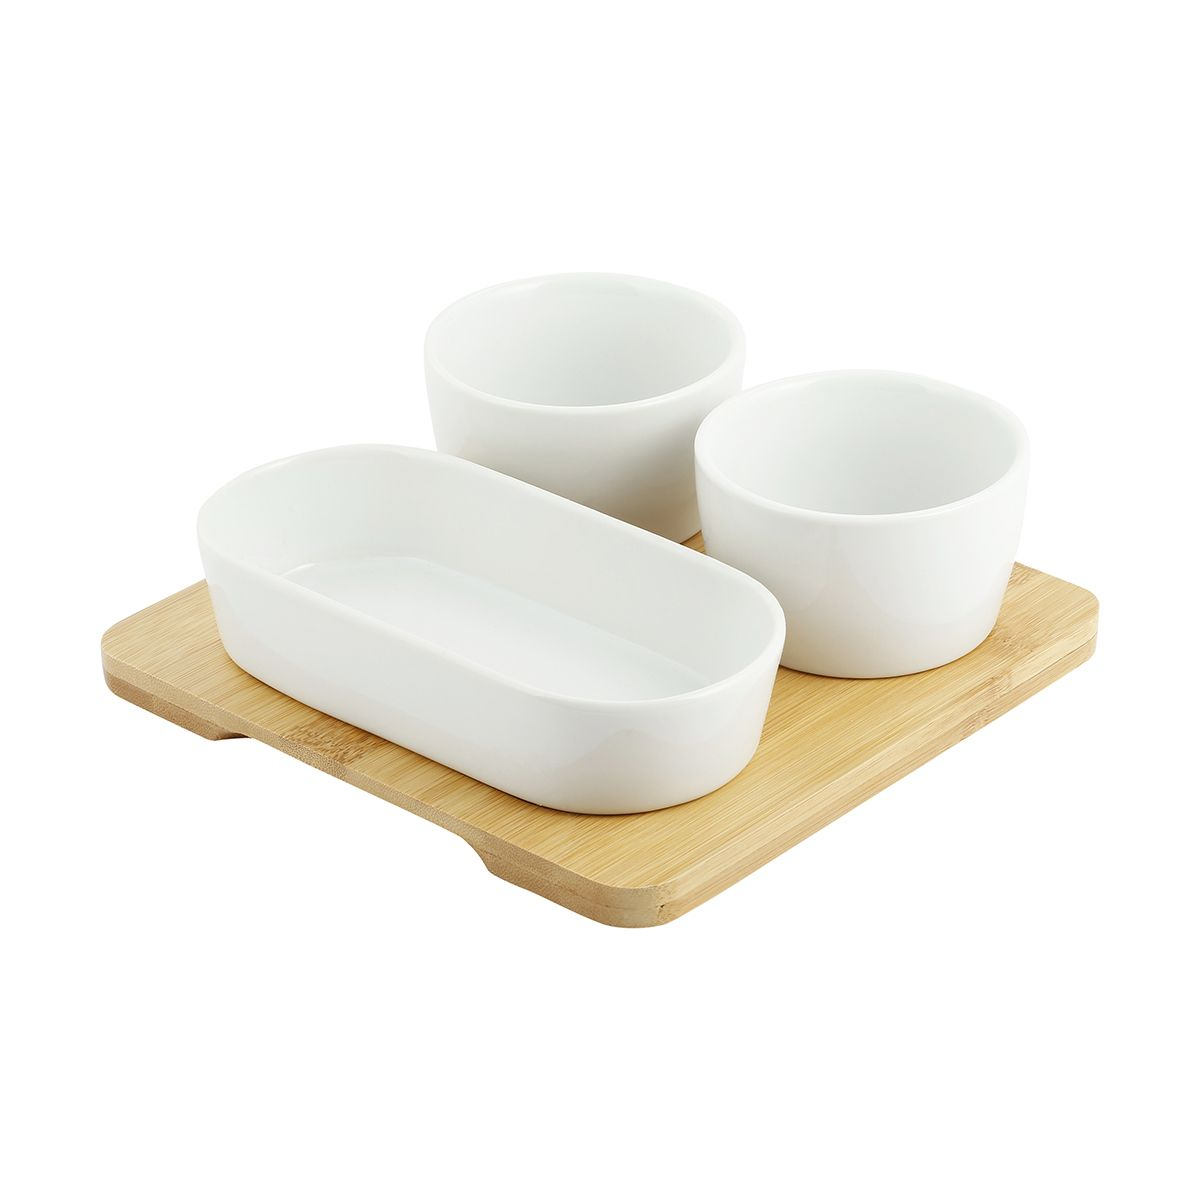 4 Piece Serving Set Kmart Serving Set Dog Bowls Dish Soap